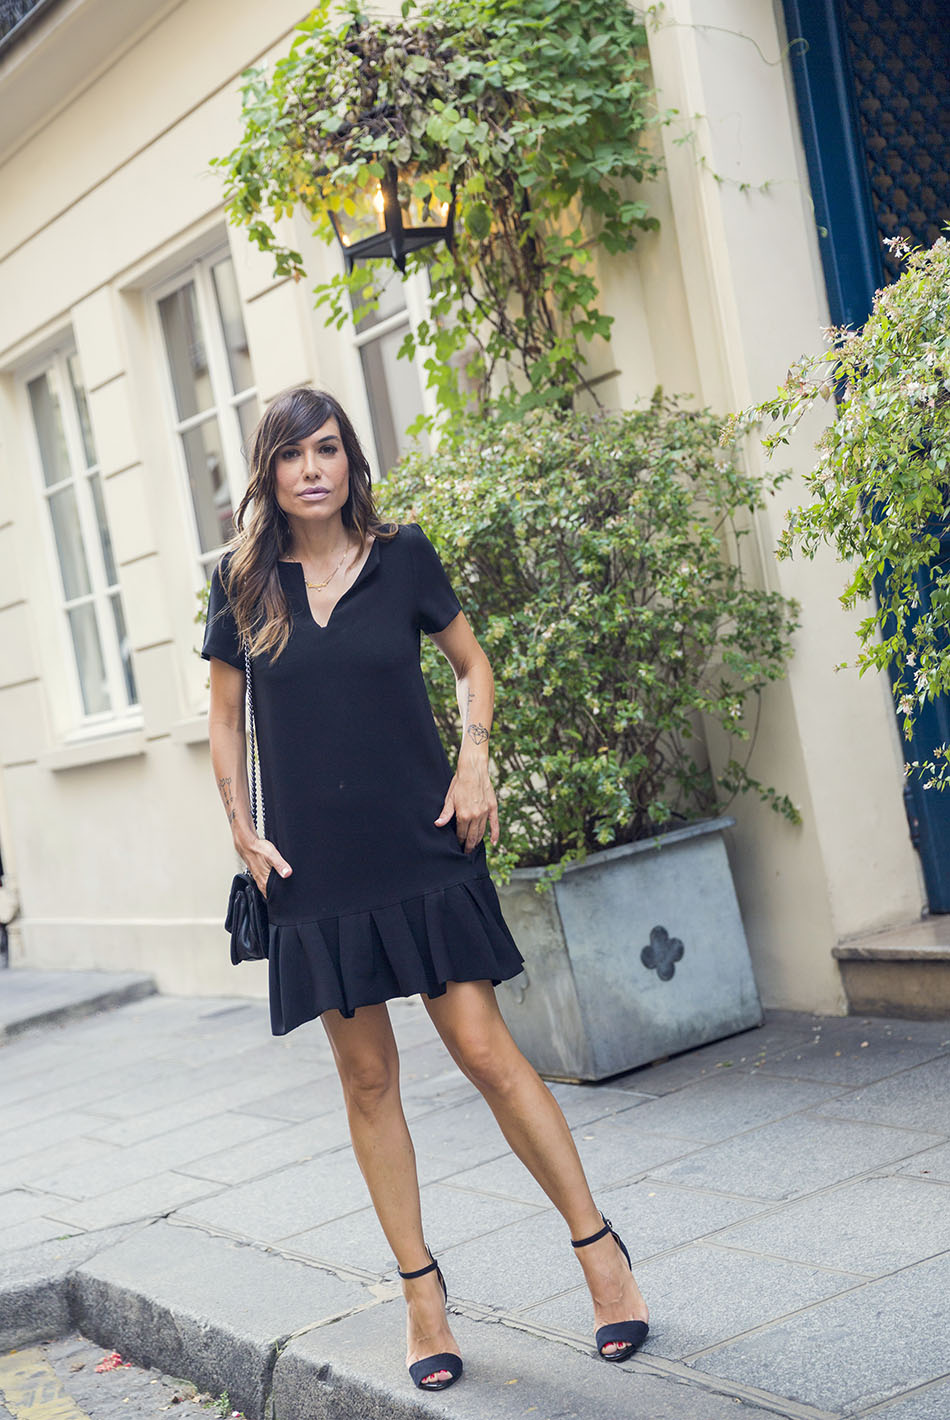 street-style-october-2016-outfits-review-barbara-crespo-01